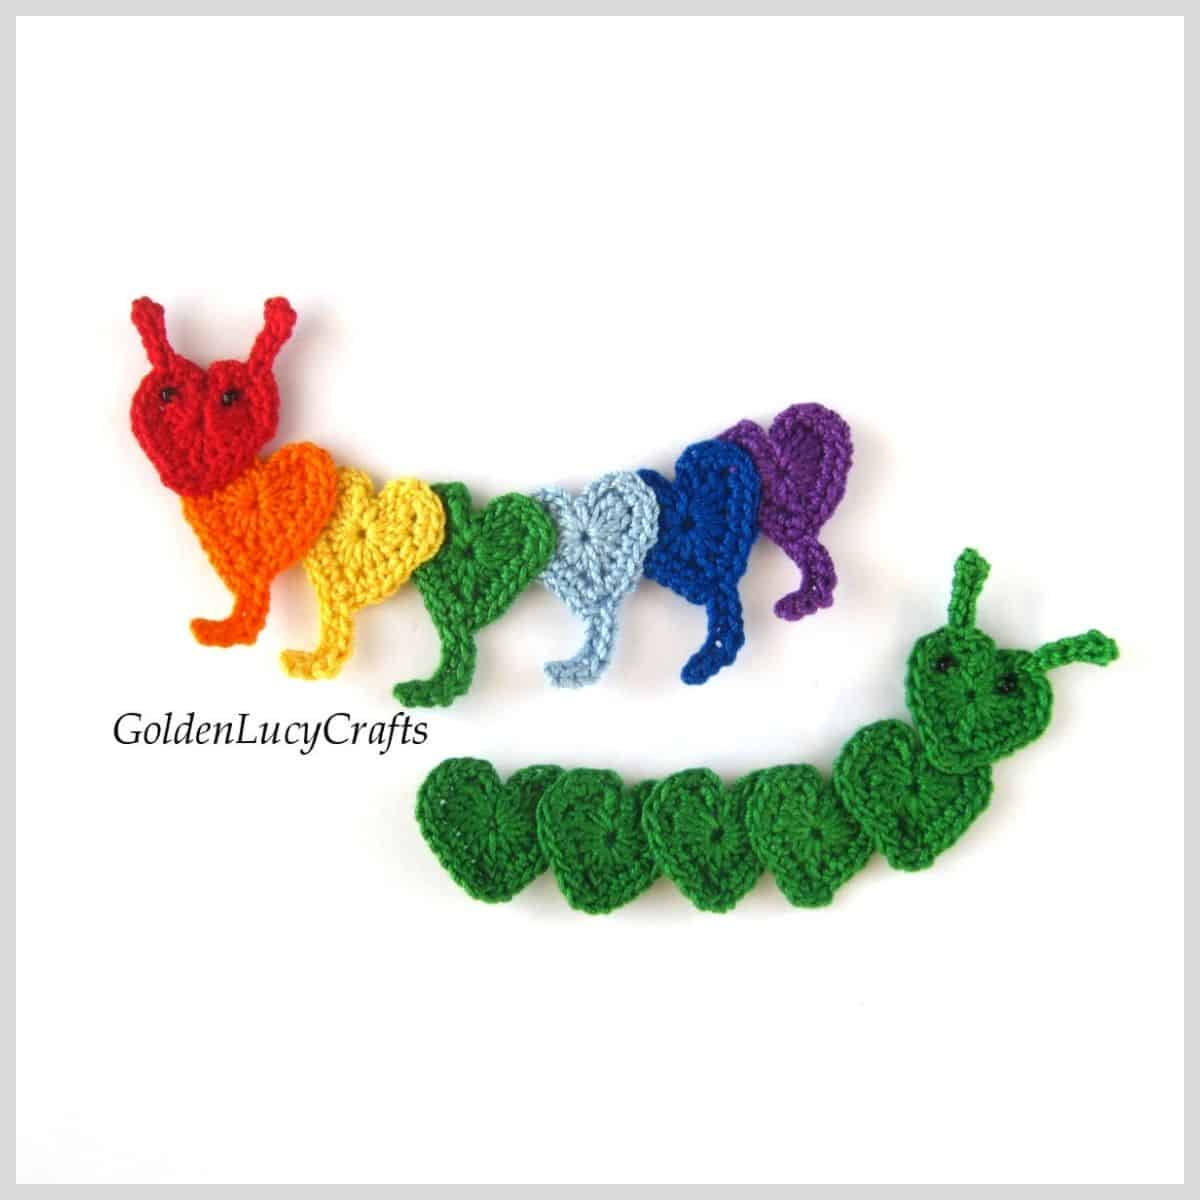 Two crocheted caterpillars applique made from hearts.